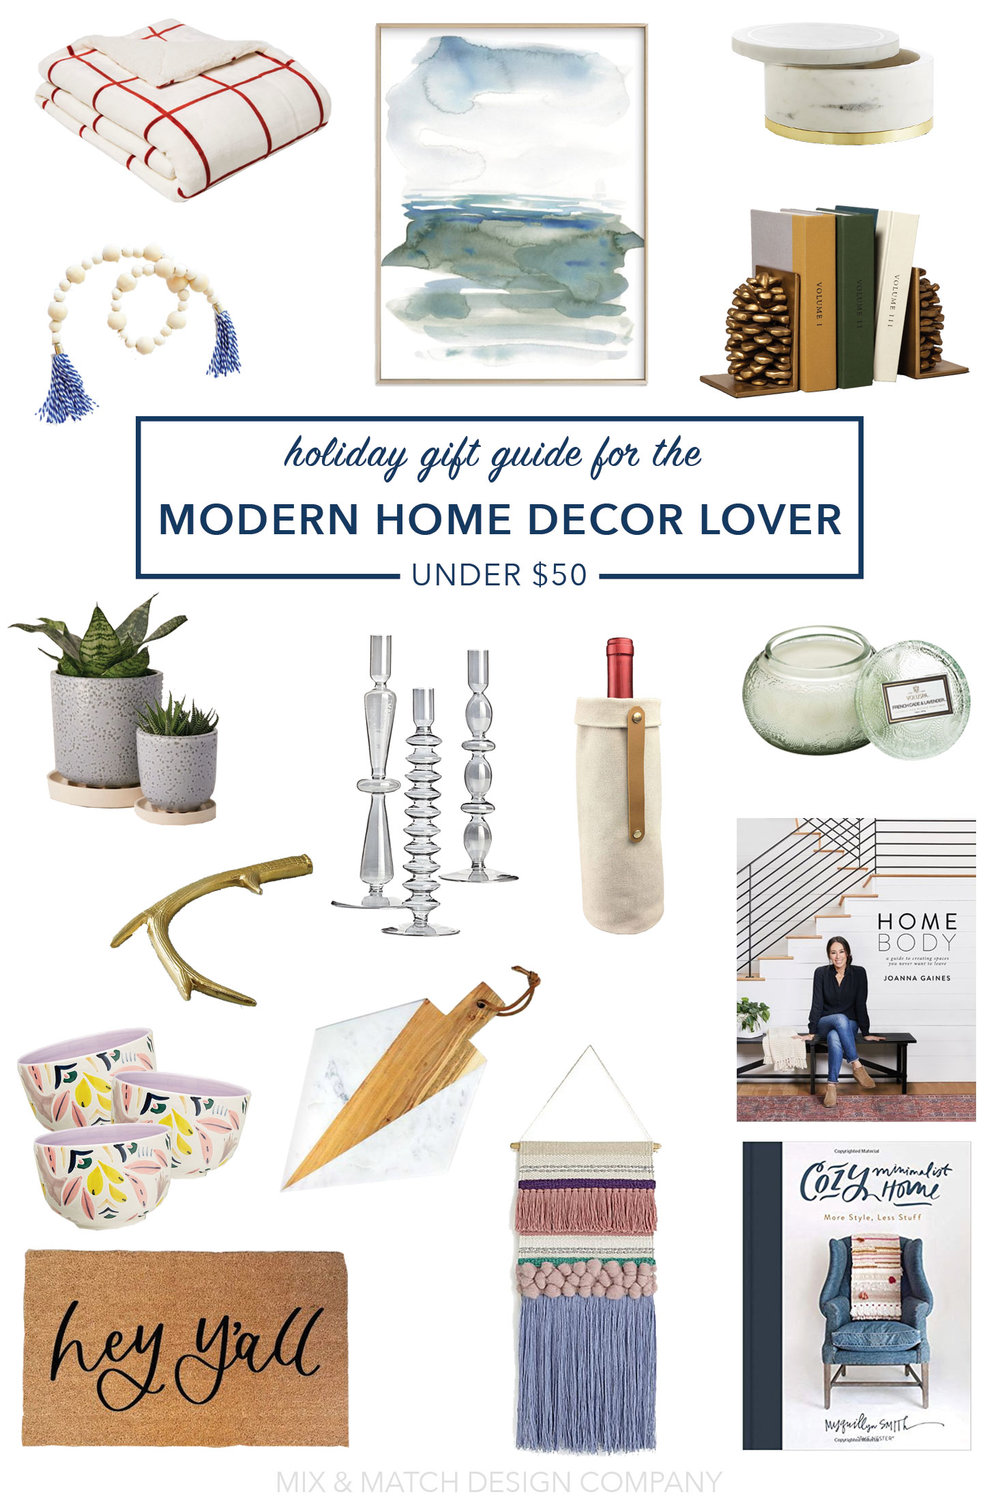 Need some gift ideas for the home decor lover in your life? I've got you covered! This round up is for the folks whose style falls into that modern or modern boho category - and everything is under $50! \\ #holidaygiftguide #moderngiftguide